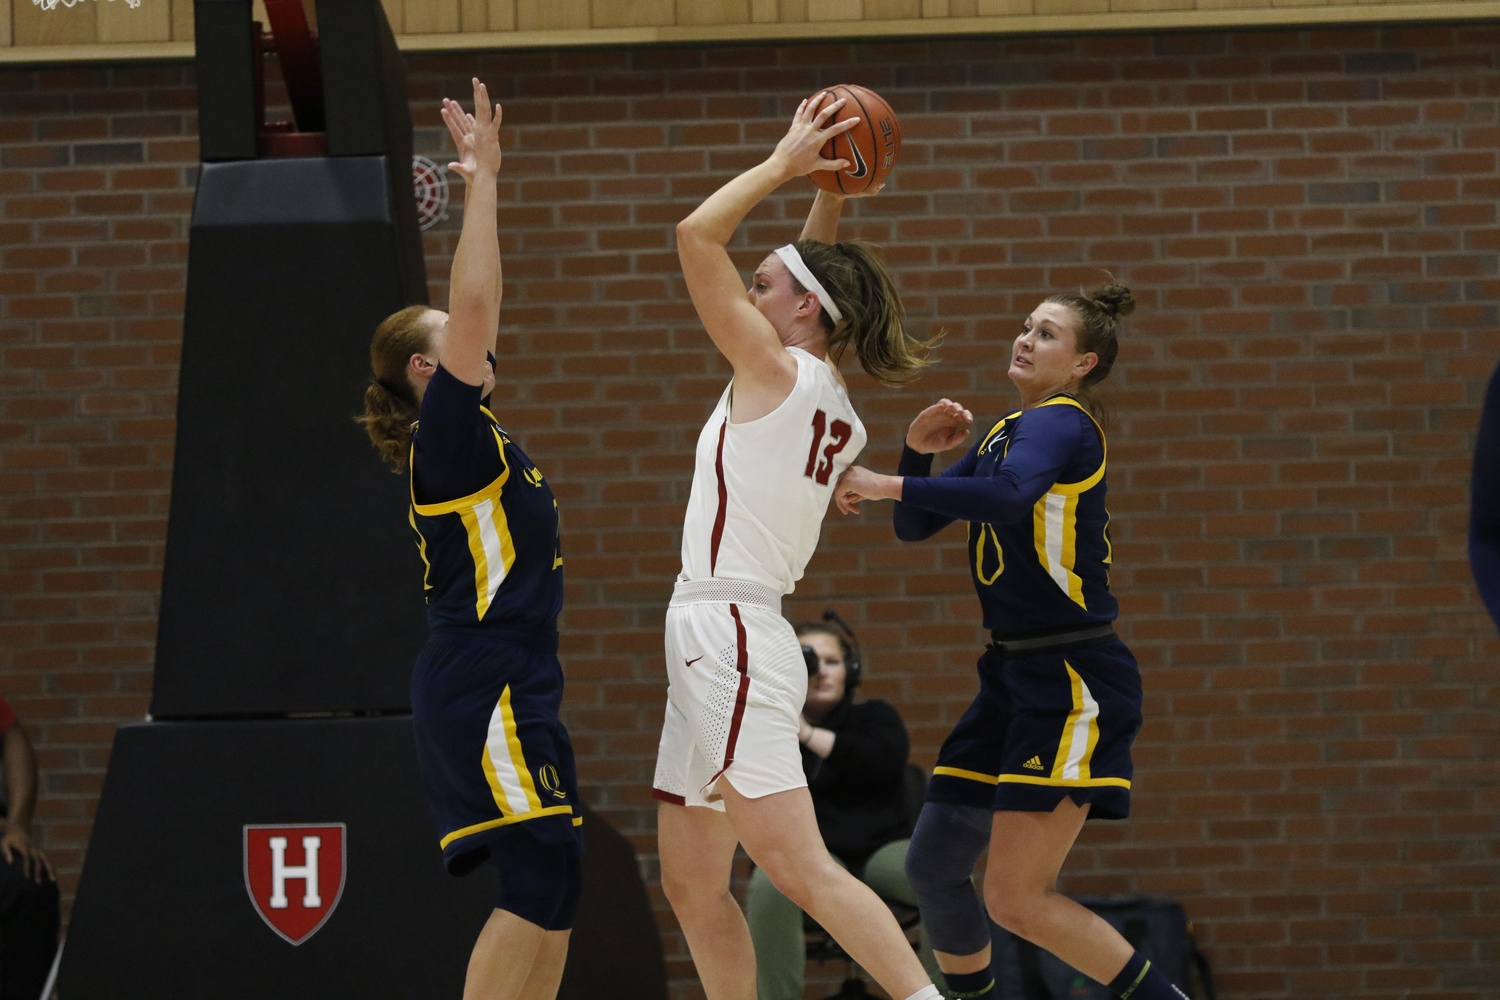 Harvard's tenacity on the glass has contributed to its 3-1 start to Ivy play.